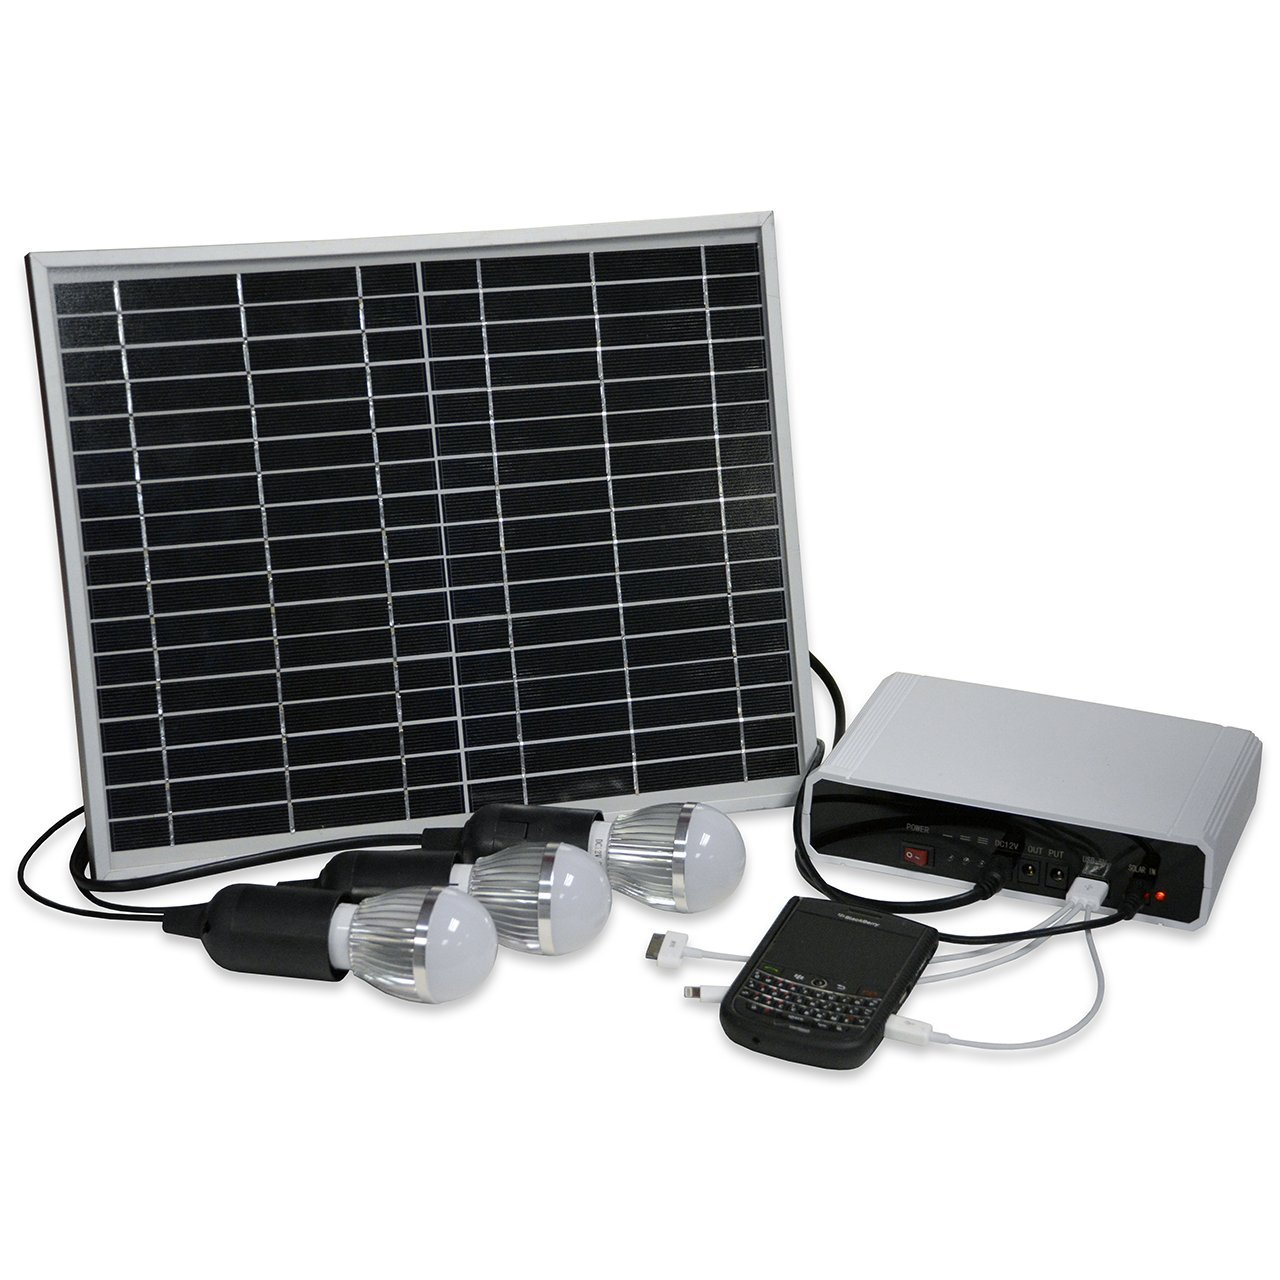 Image of Landscape Lighting Affirm Global IT118373 Rechargeable Solar Lighting System And Cell Phone Charger For Emergency/Camping